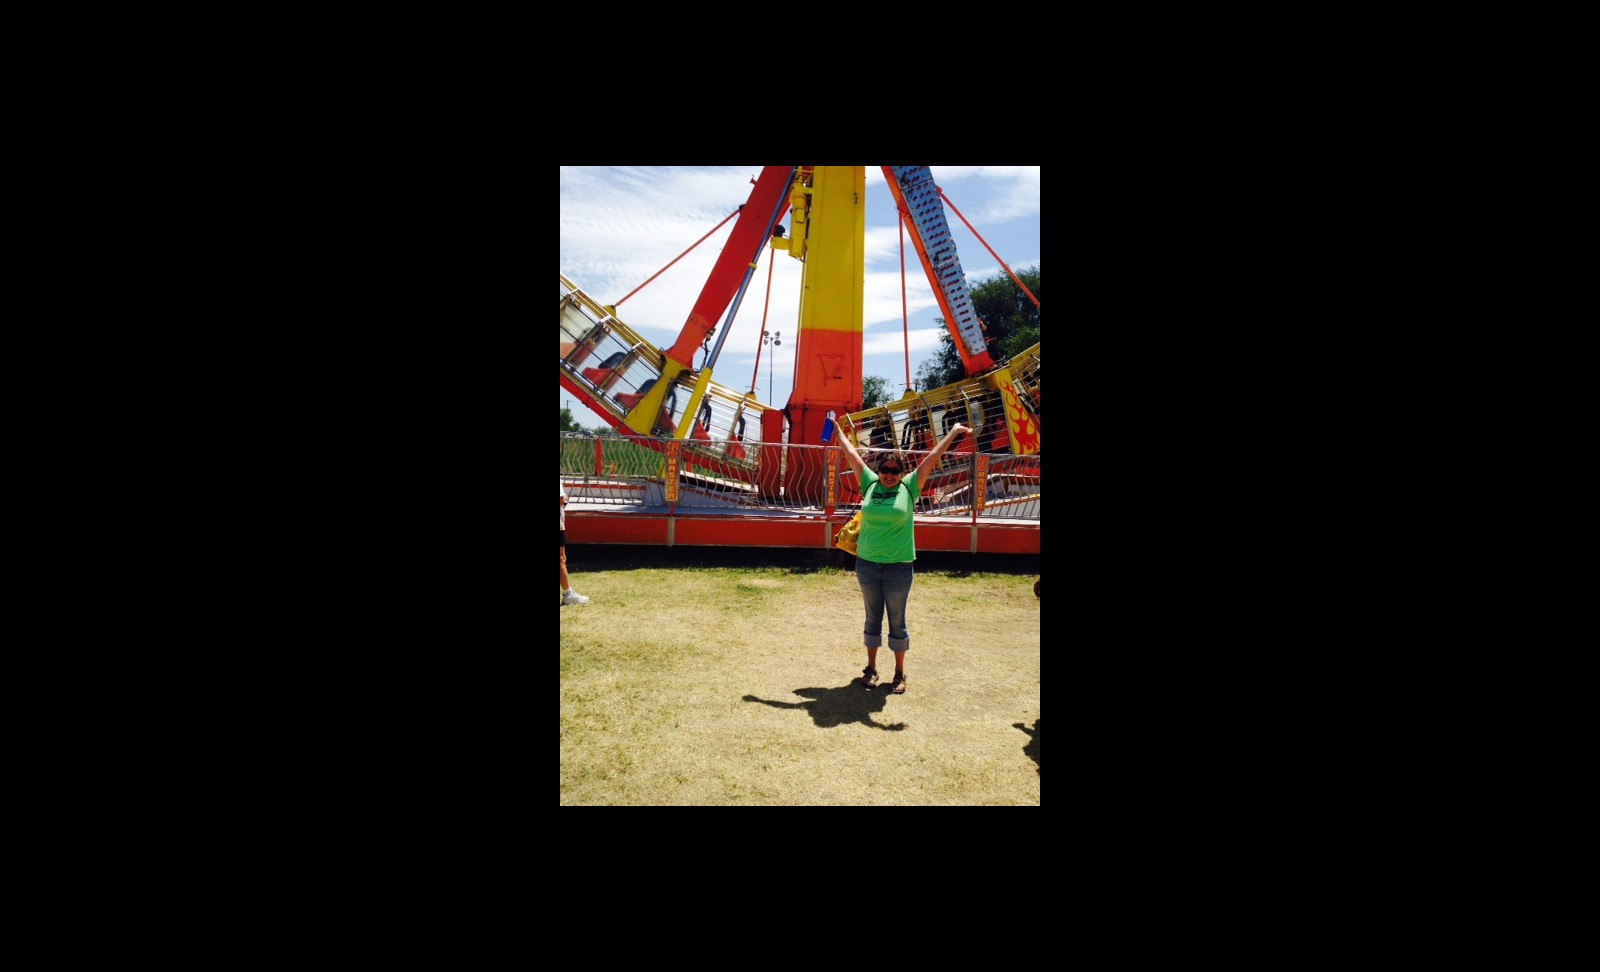 Title - Jacqueline living it up at the fair